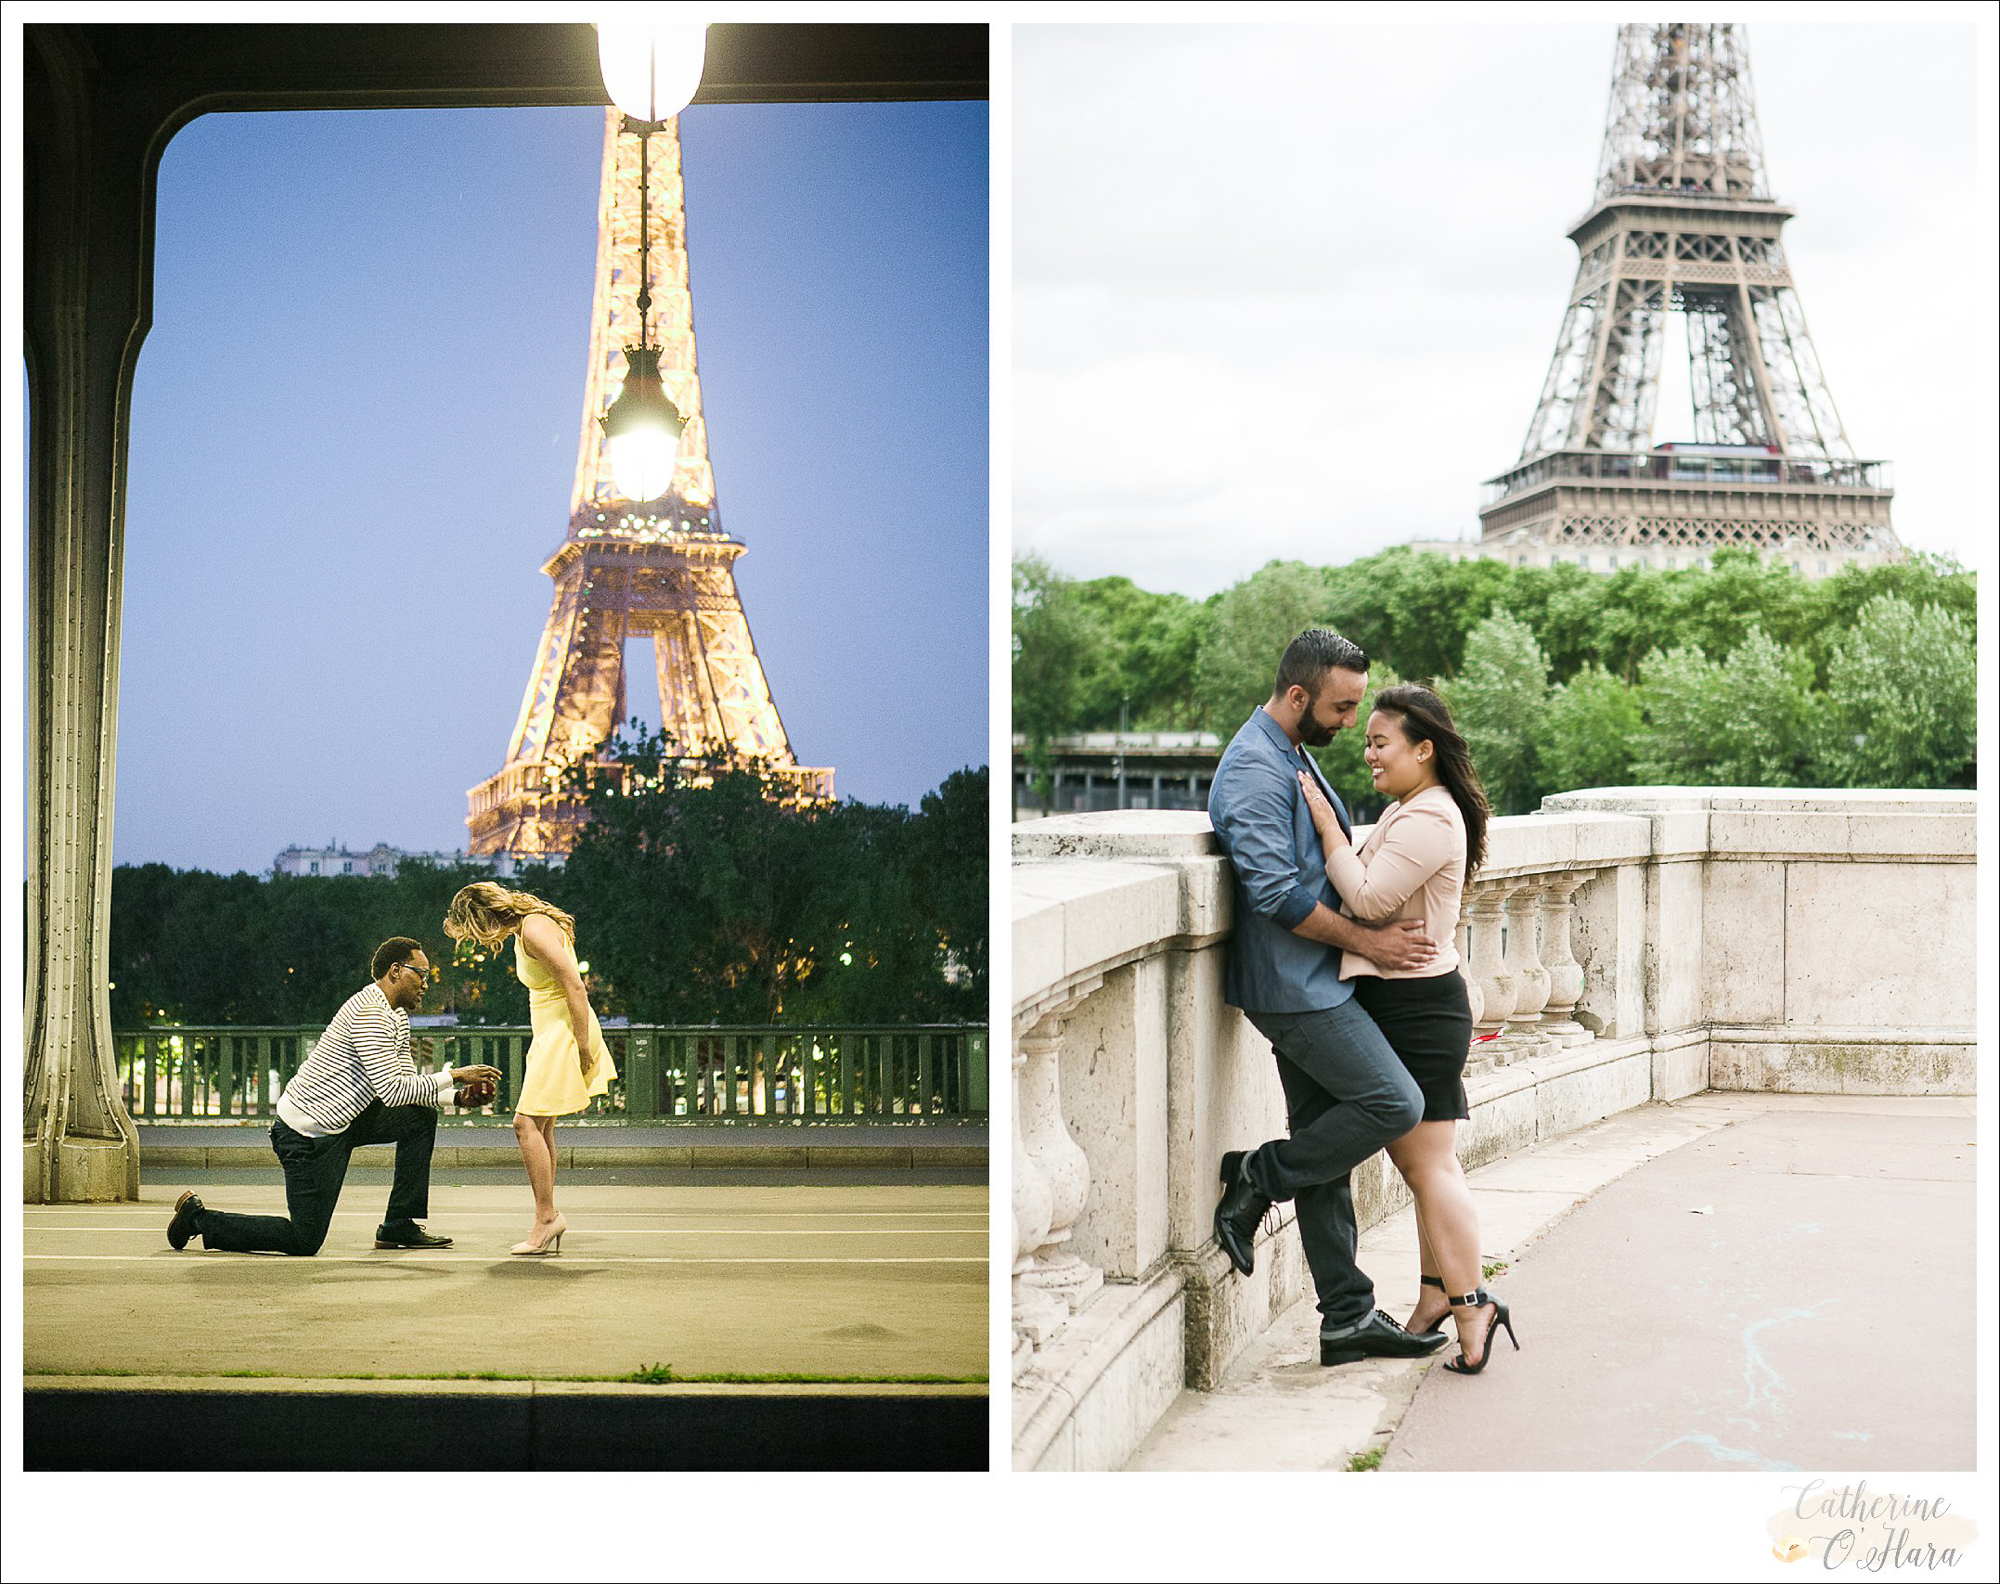 surprise proposal engagement photographer paris france-32.jpg